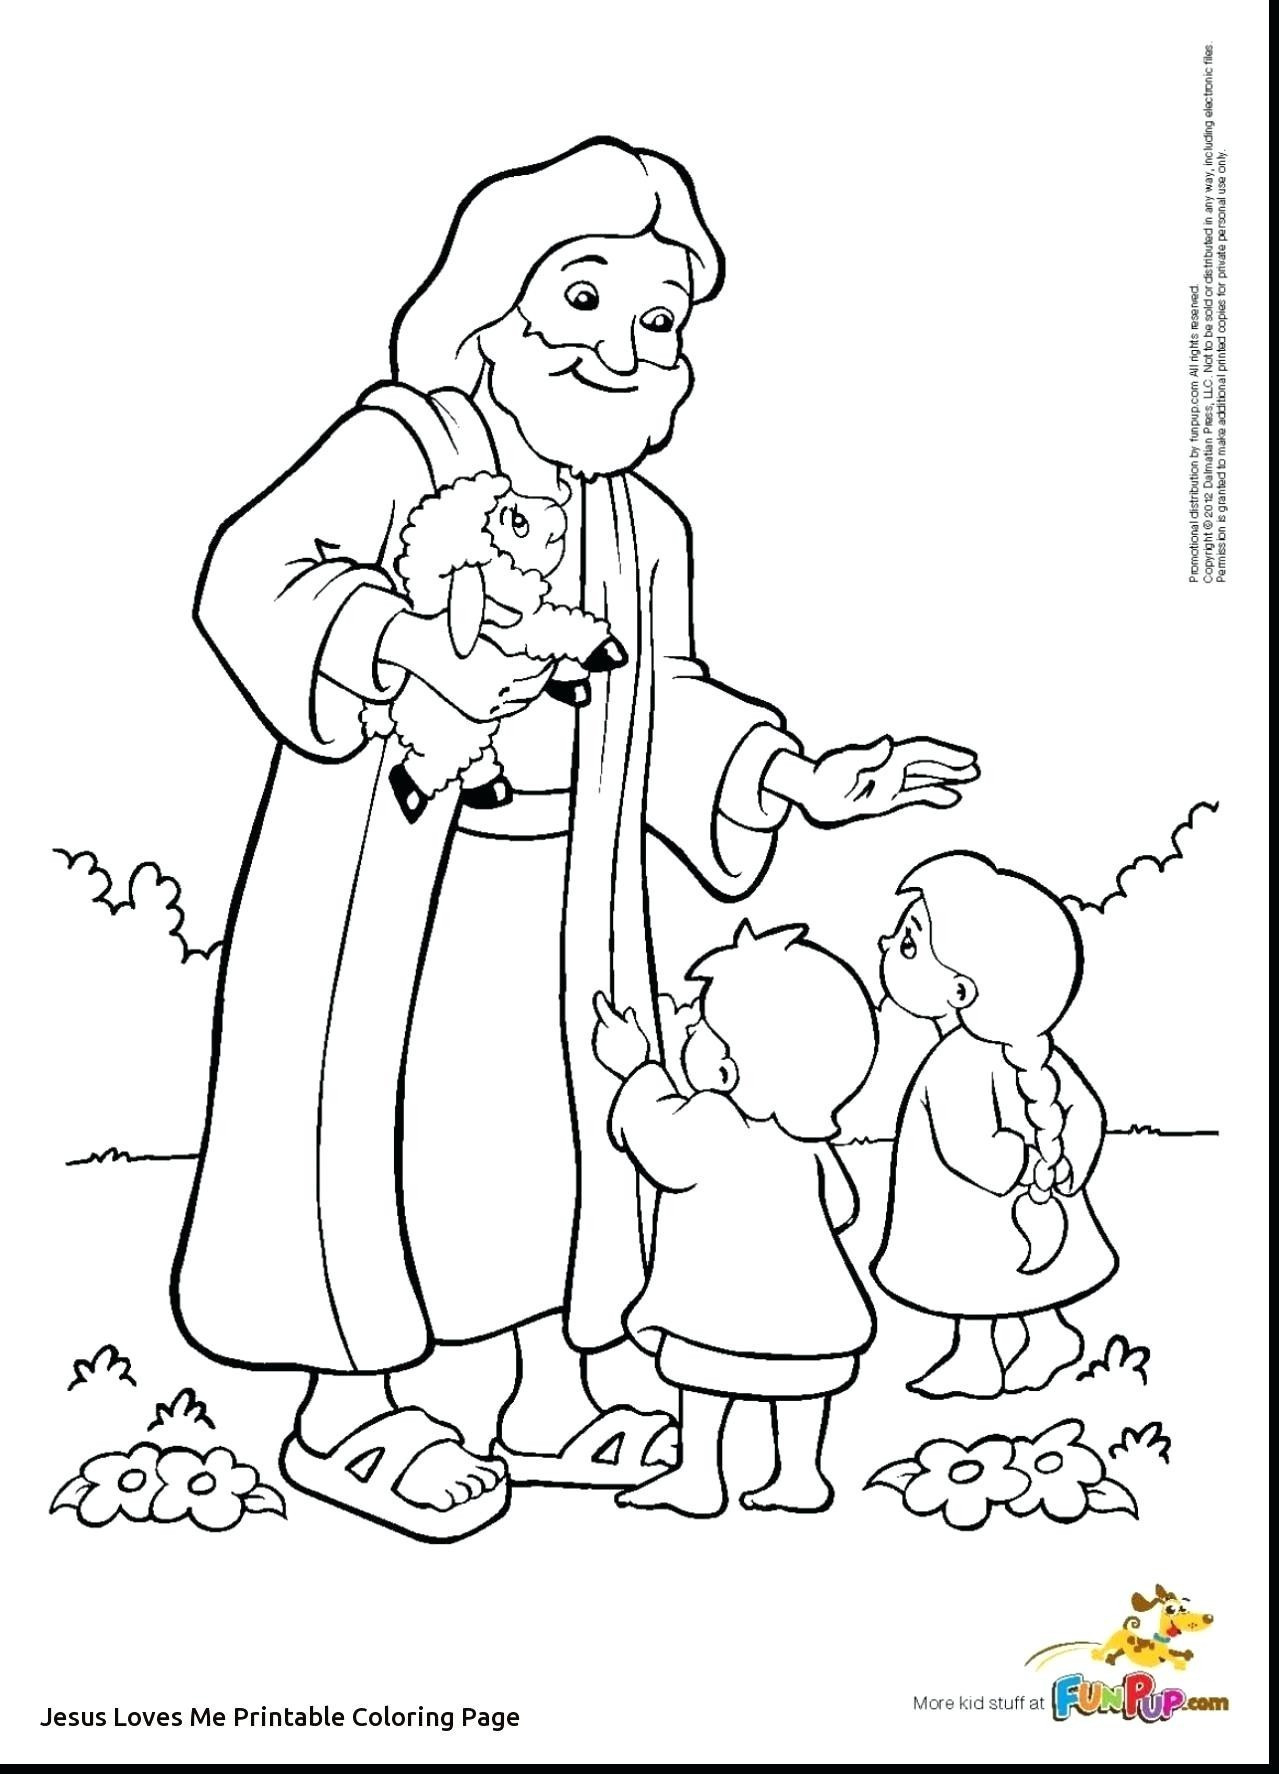 Jesus Loves Me Coloring Page Jesus Loves Me Coloring Page Coloring Pages For Children